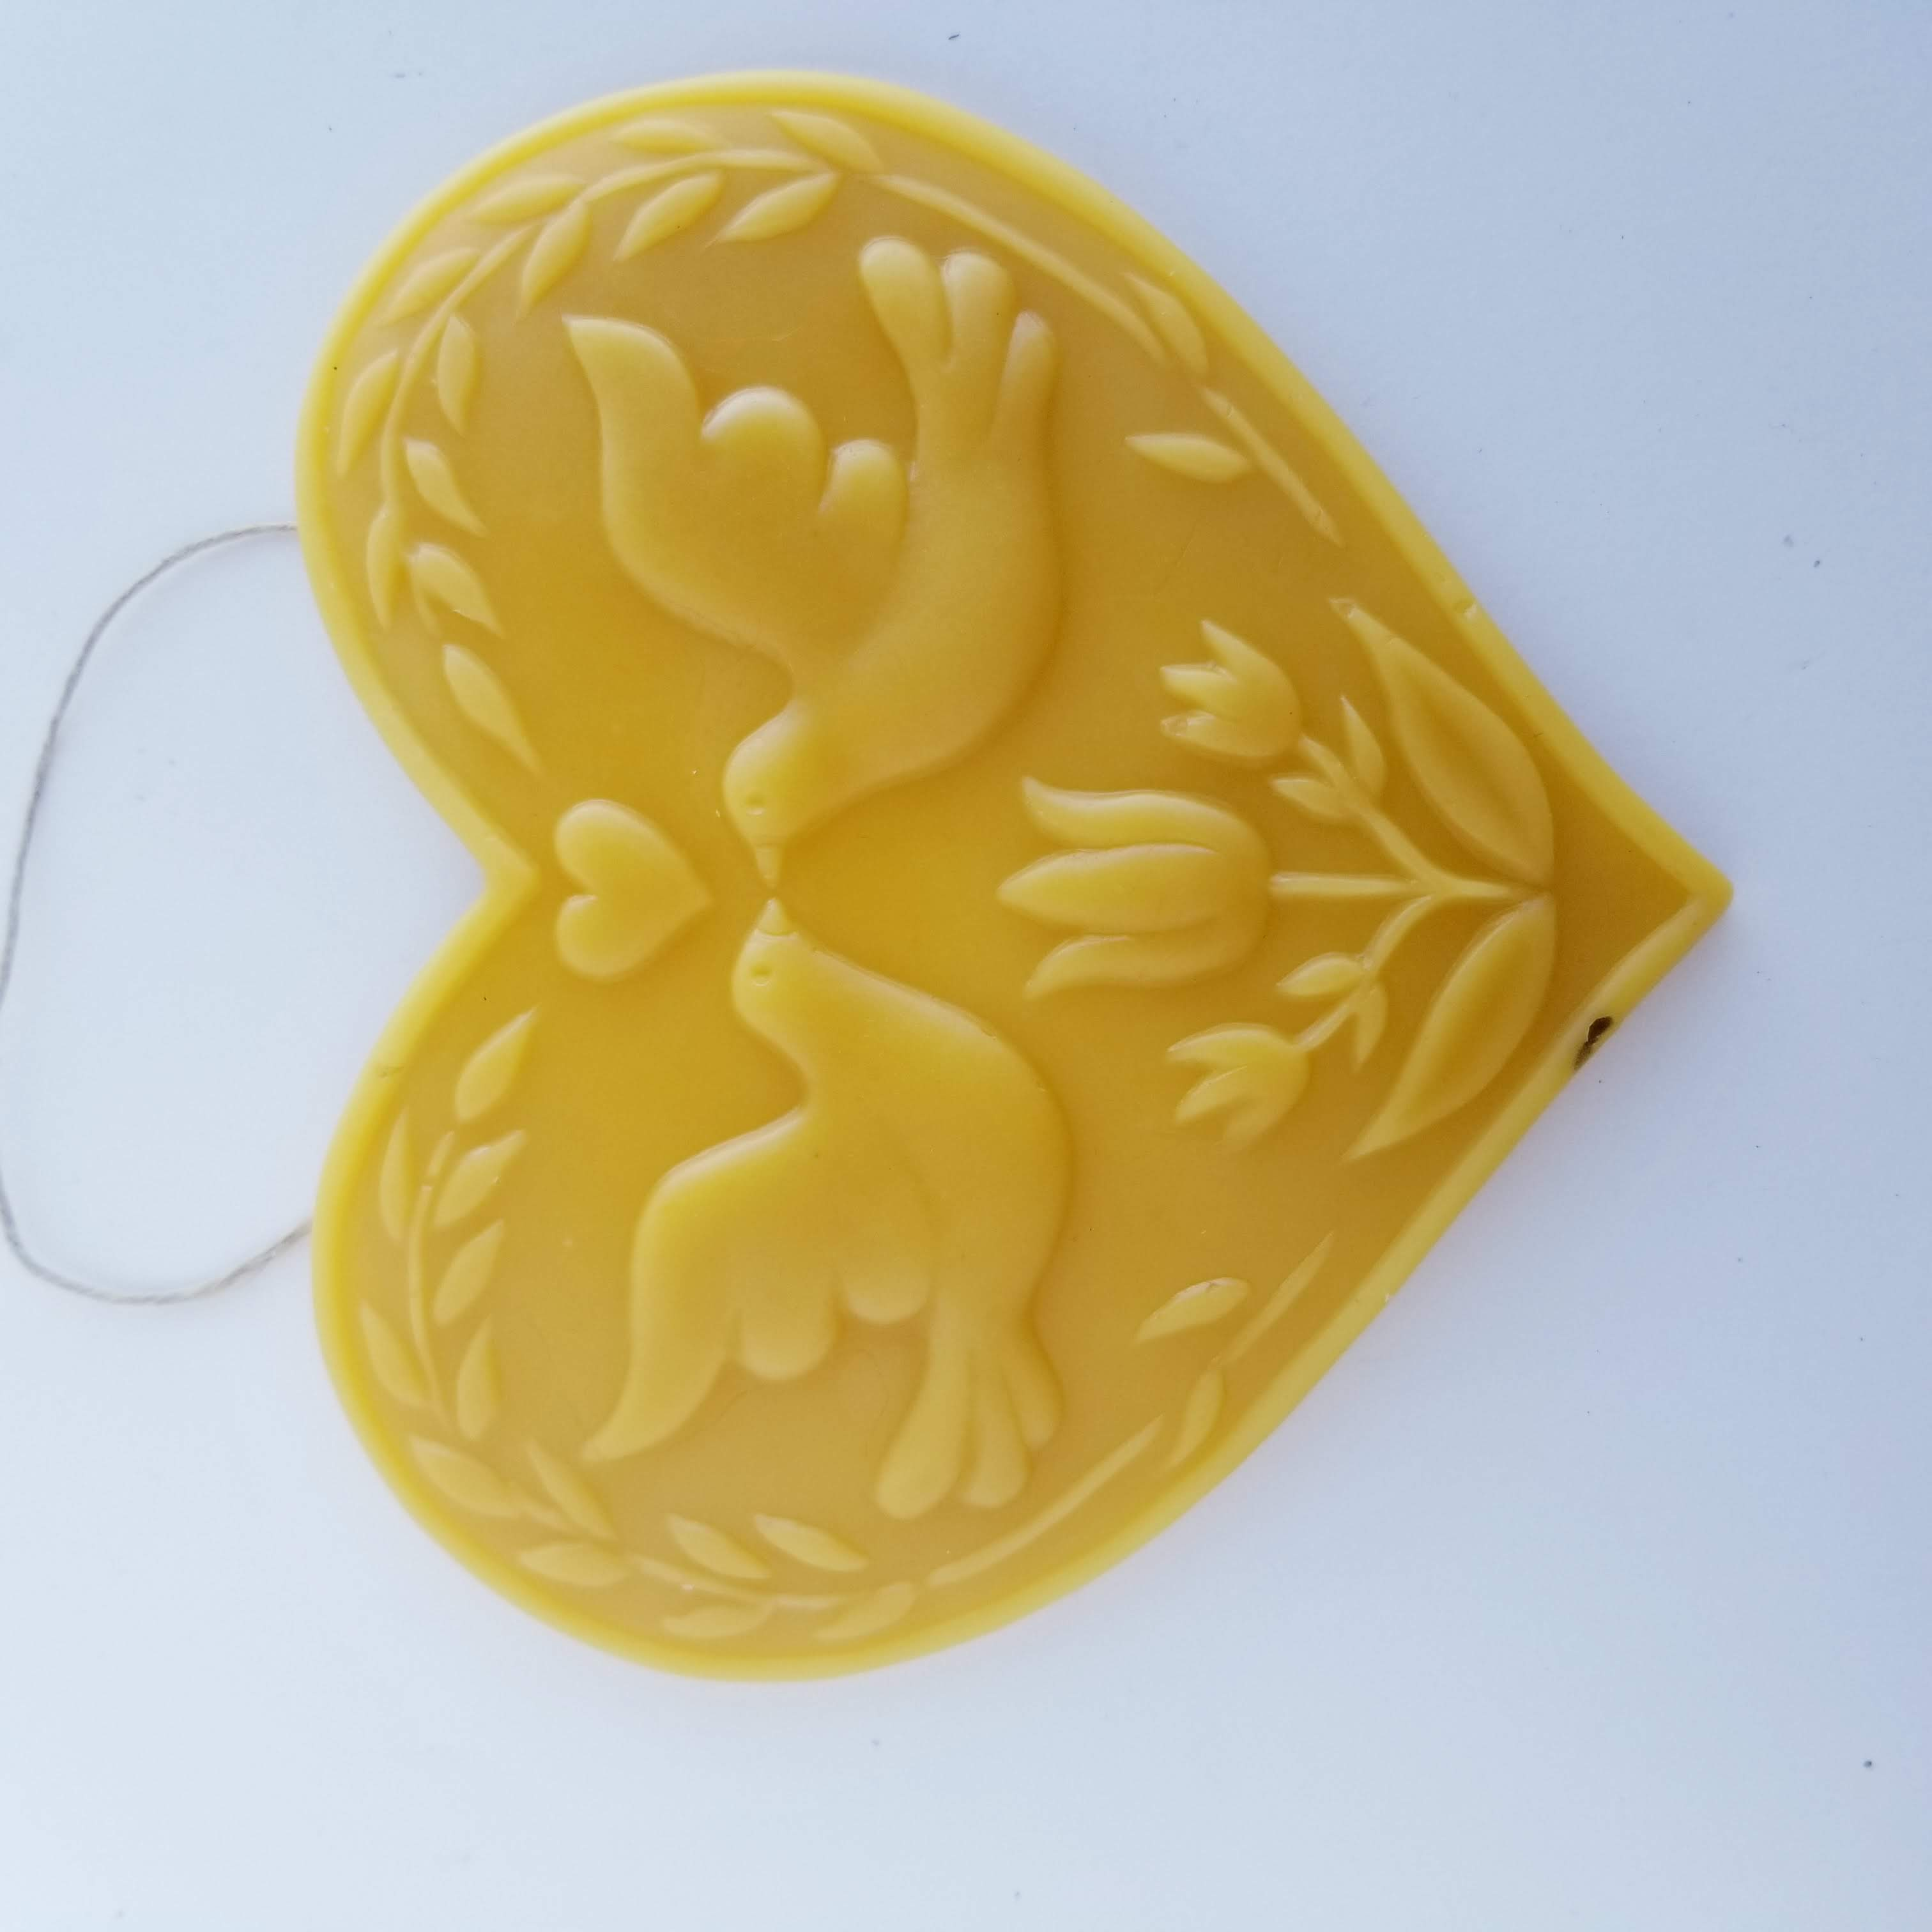 Carved Dutch Tulip and Doves Ornament - Yellow Beeswax